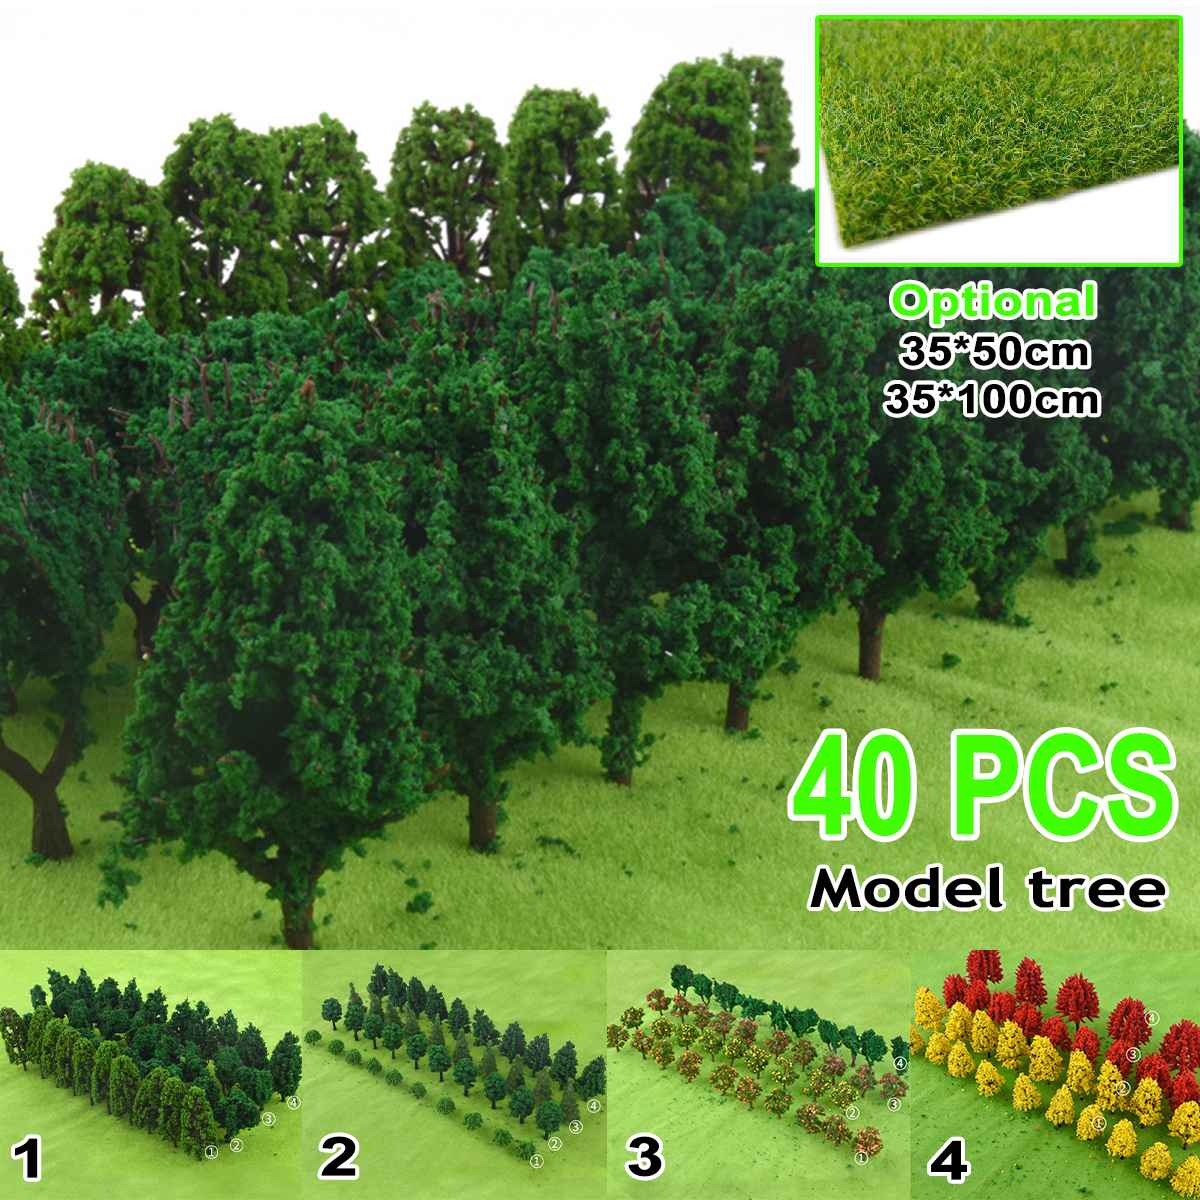 40pcs DIY Handmade Plastic Miniature Model Trees For Building Garden Railroad Layout Scenery Landscape Accessories Toys For Kids